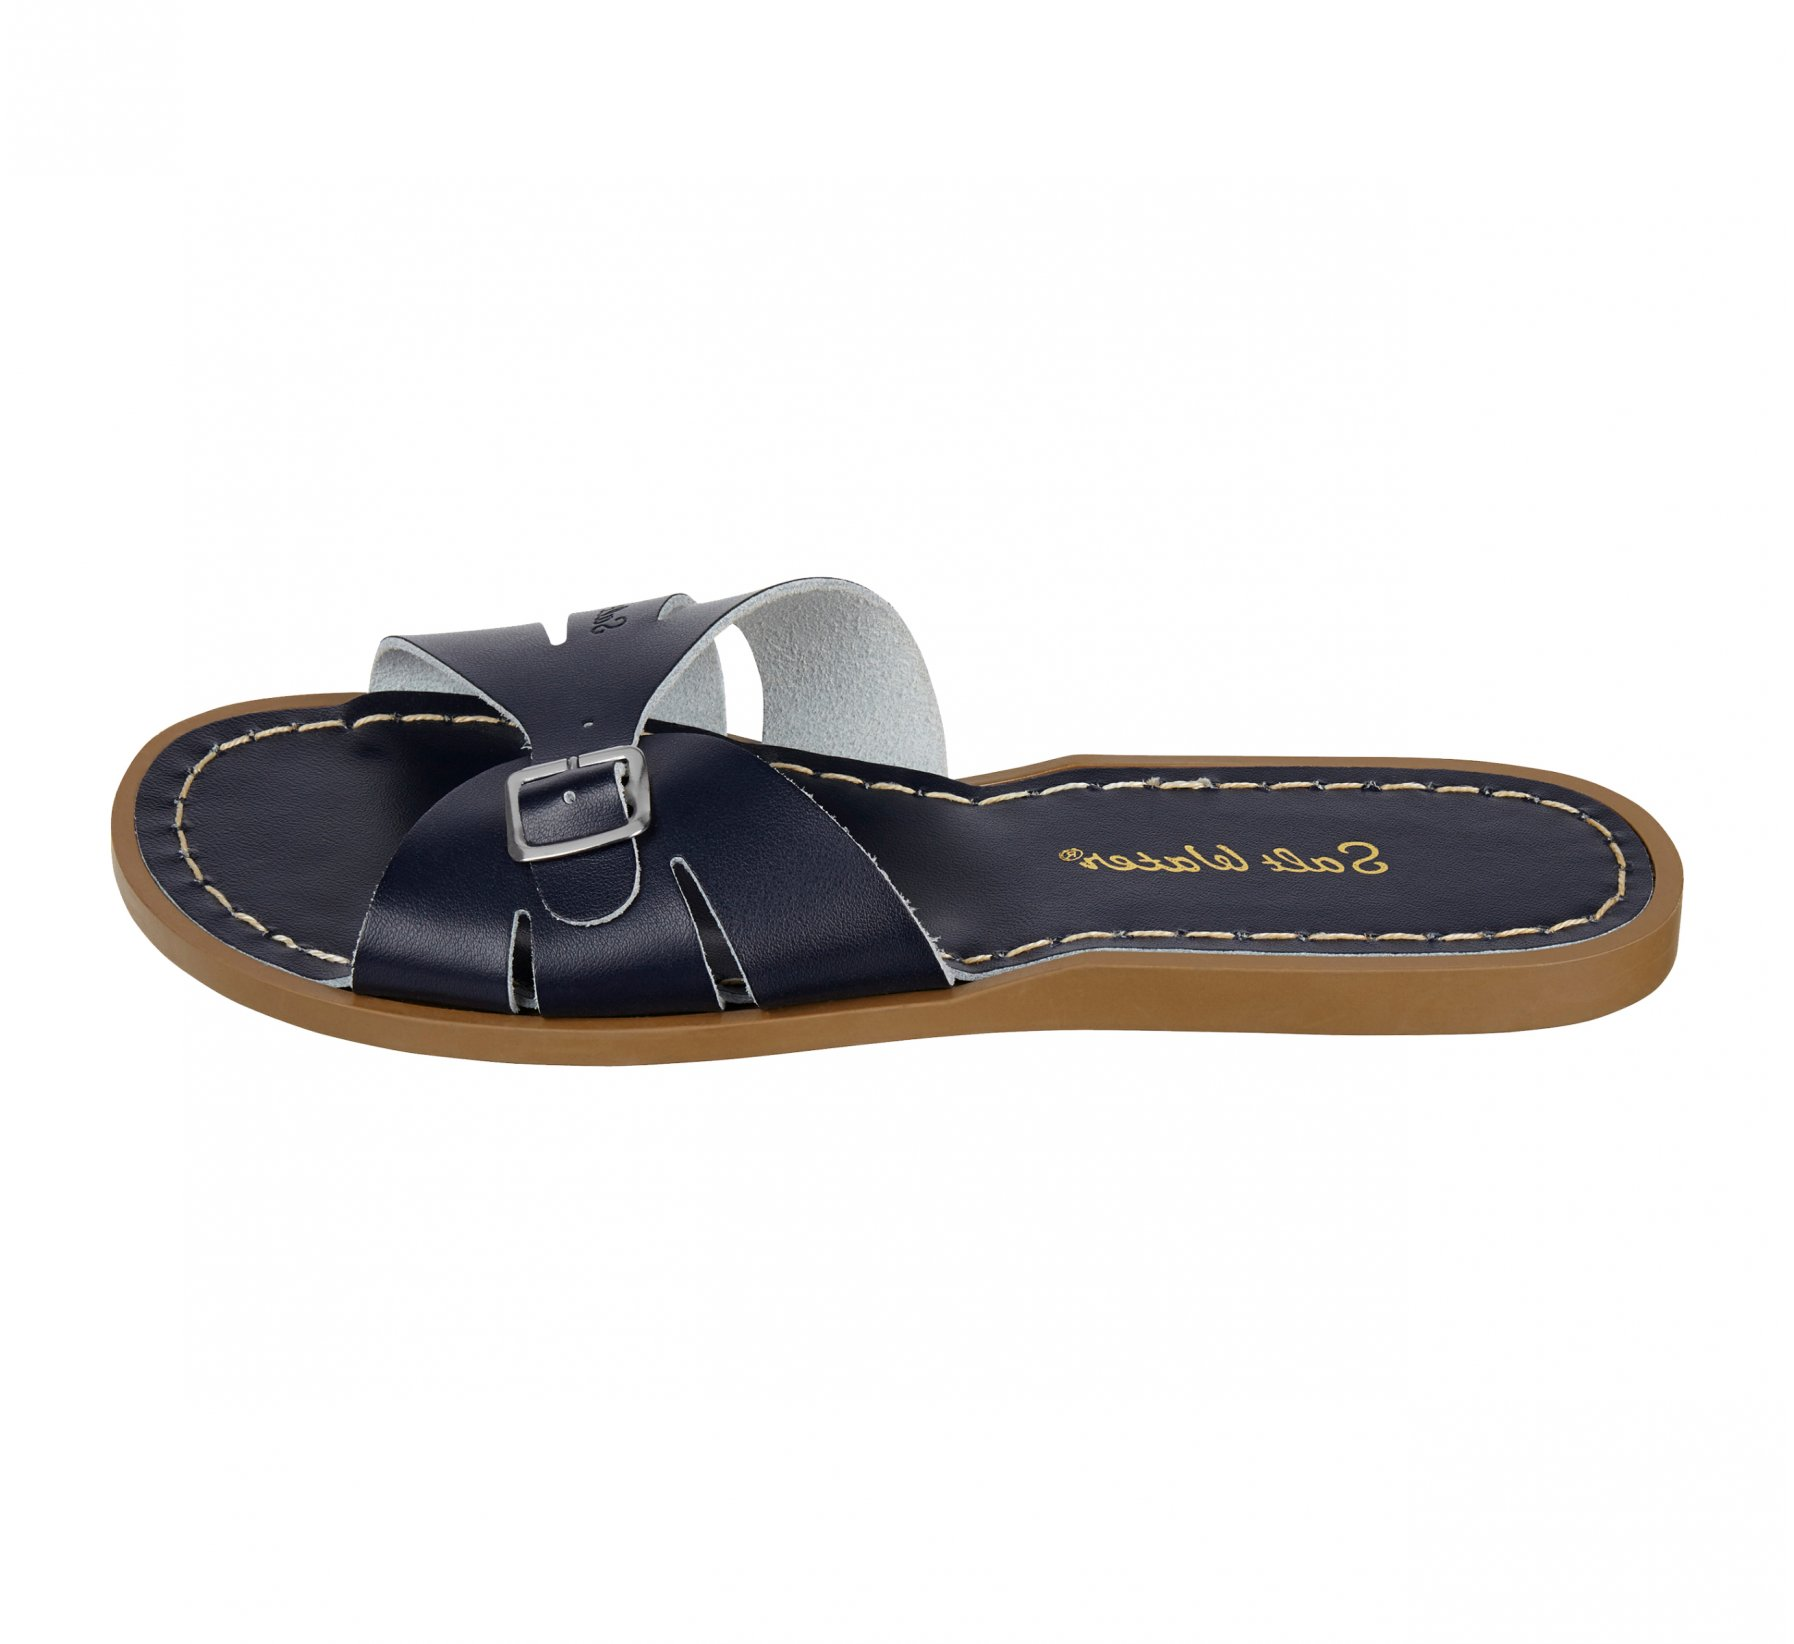 Classic Slide Biru Kelasi - Salt Water Sandals